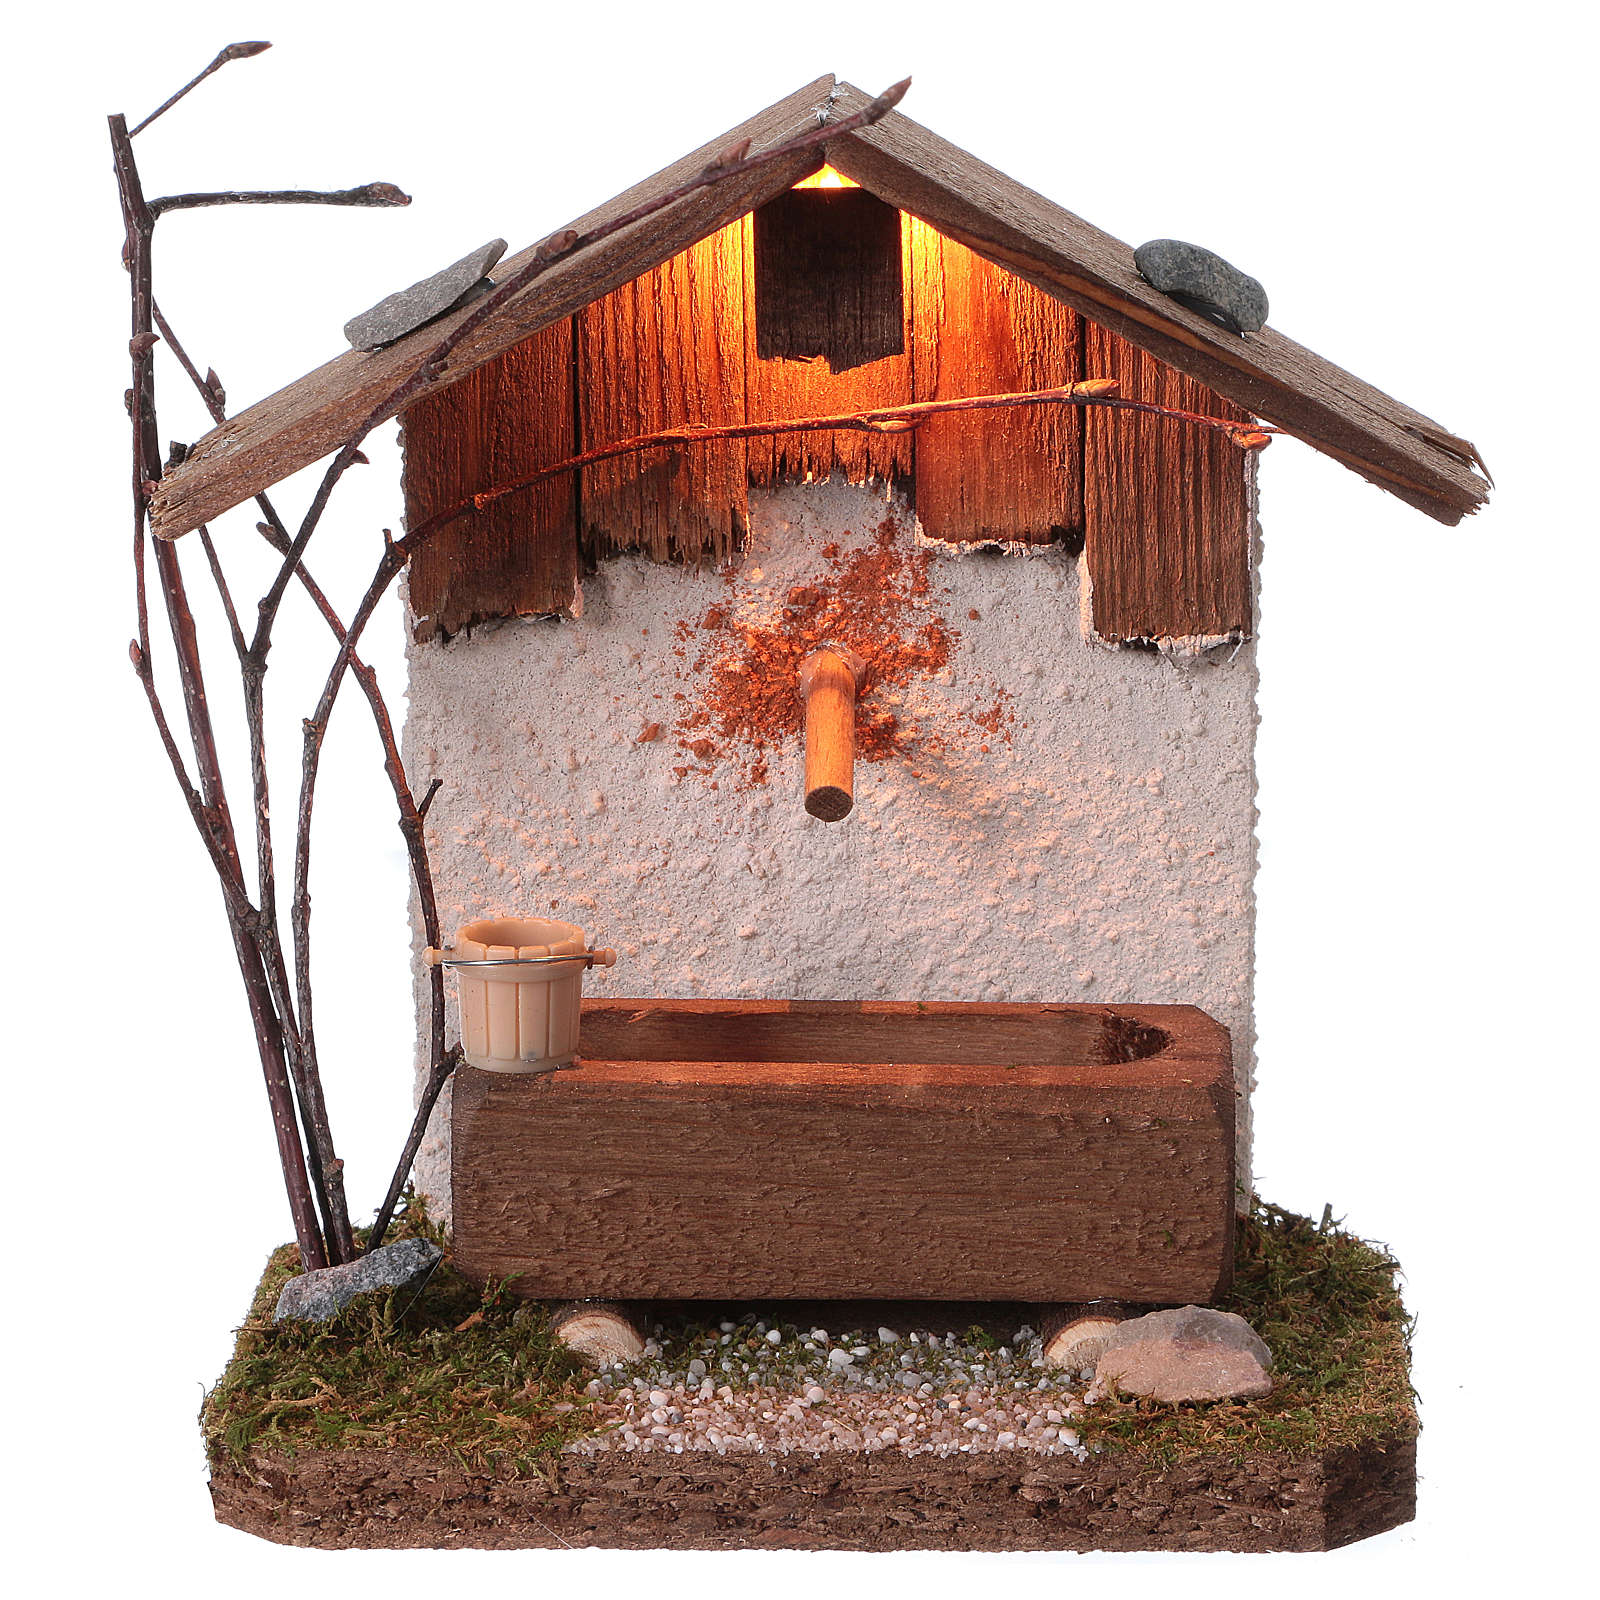 Nordic-style fountain with drinking trough 14x12x8 cm for 8-10cm Nativity Scene 4